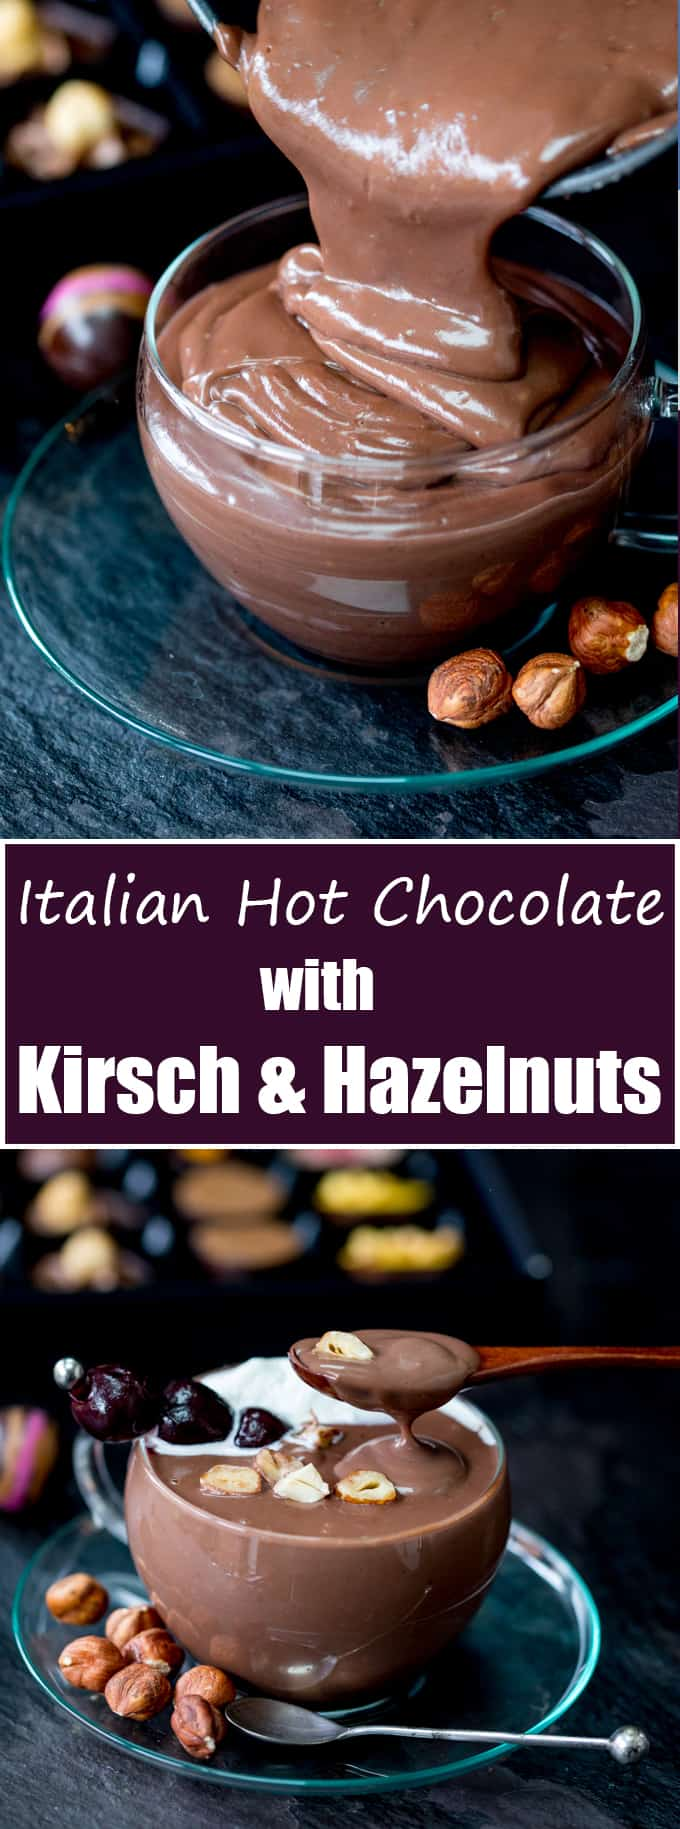 This Luxurious Italian Hot Chocolate with Kirsch and Hazelnuts is thick, creamy and the best chocolate fix ever!